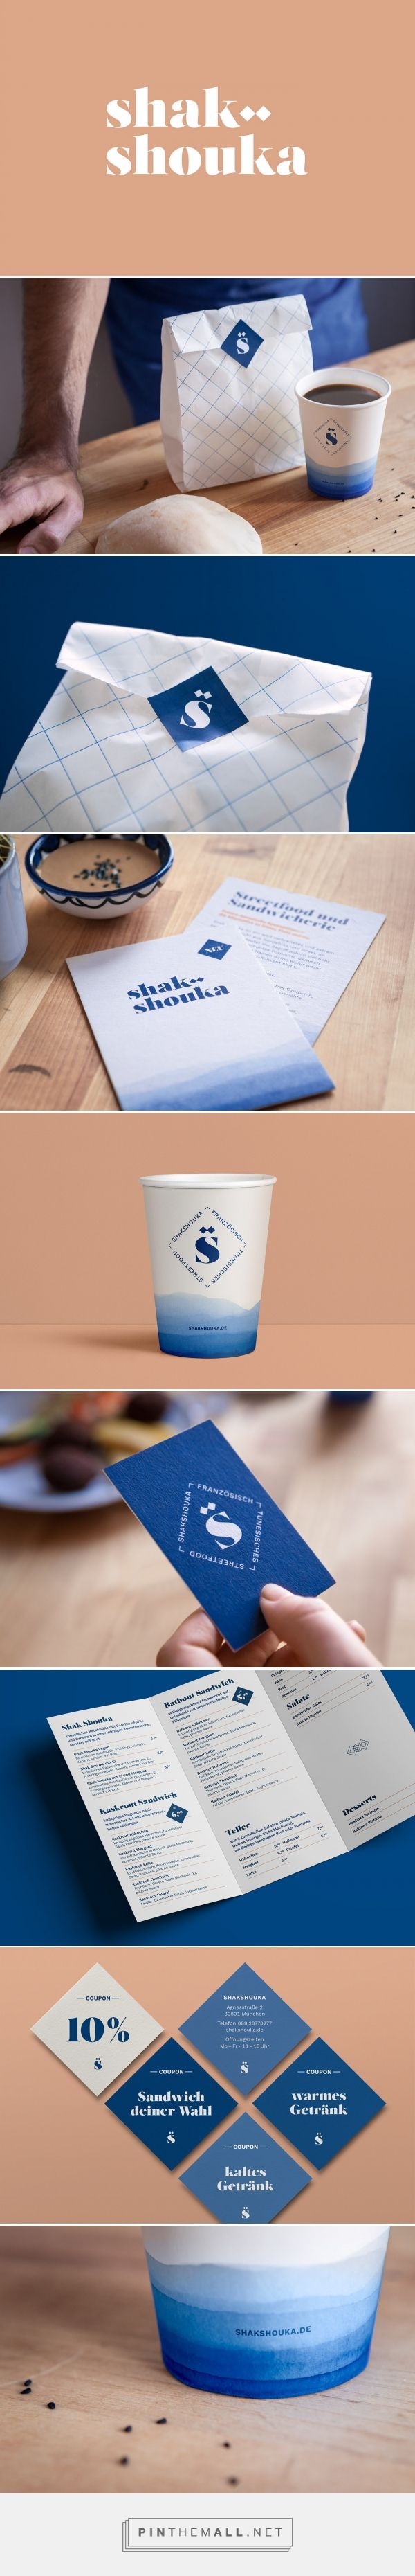 Shak Shouka visual branding identity by muskat design on Behance